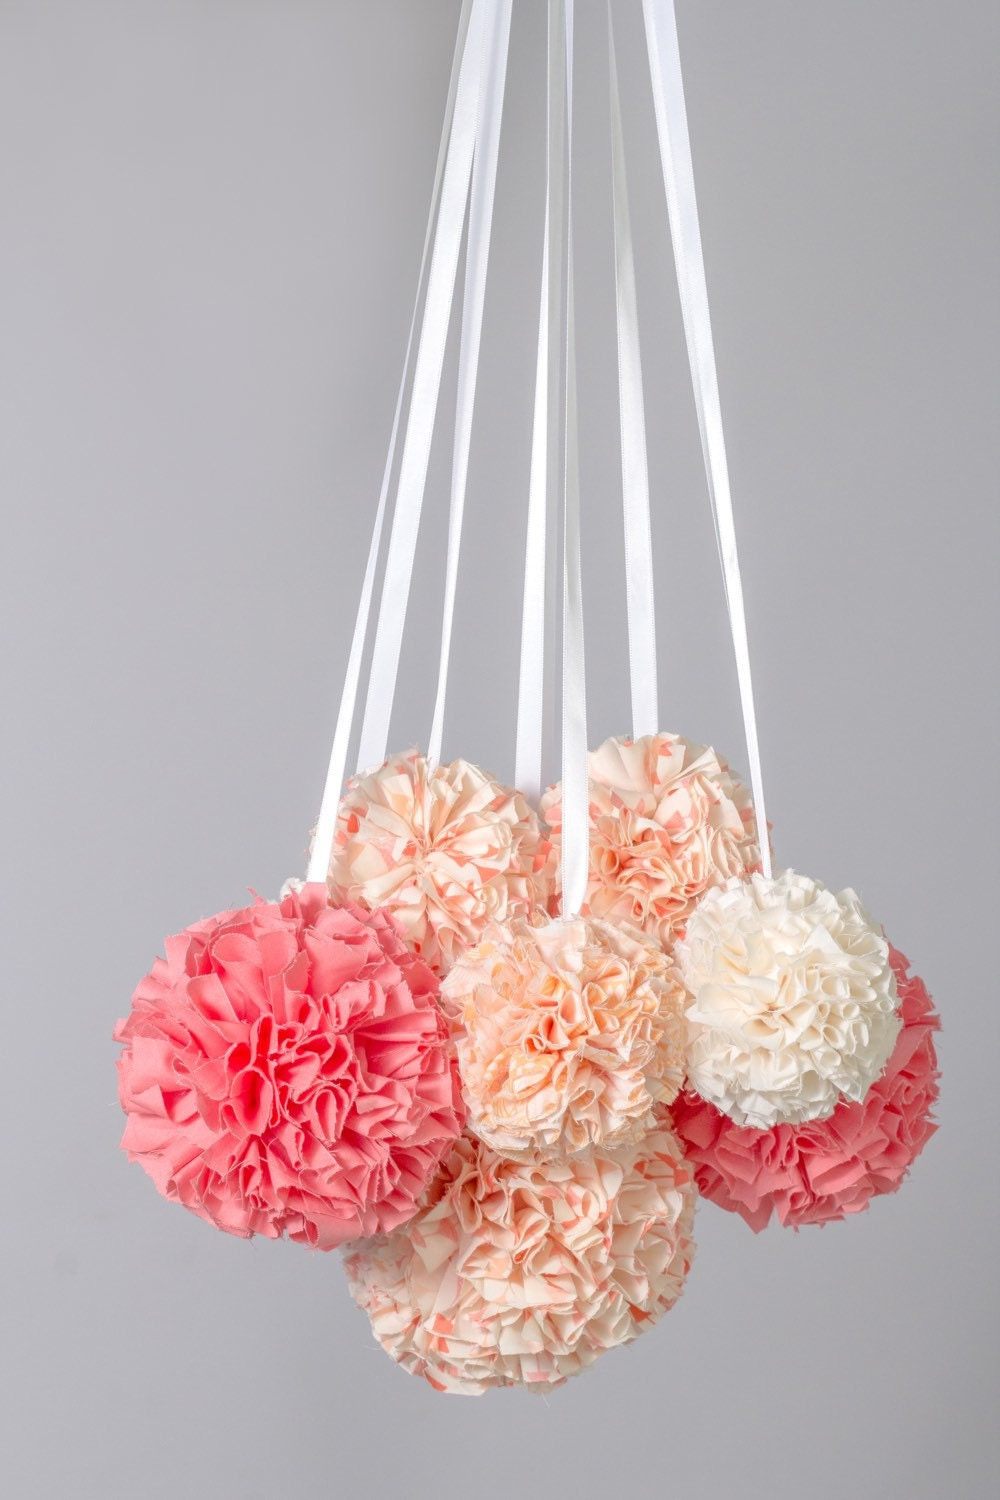 Hanging pom pom mobile nursery mobile crib mobile custom for Hanging pom poms from ceiling